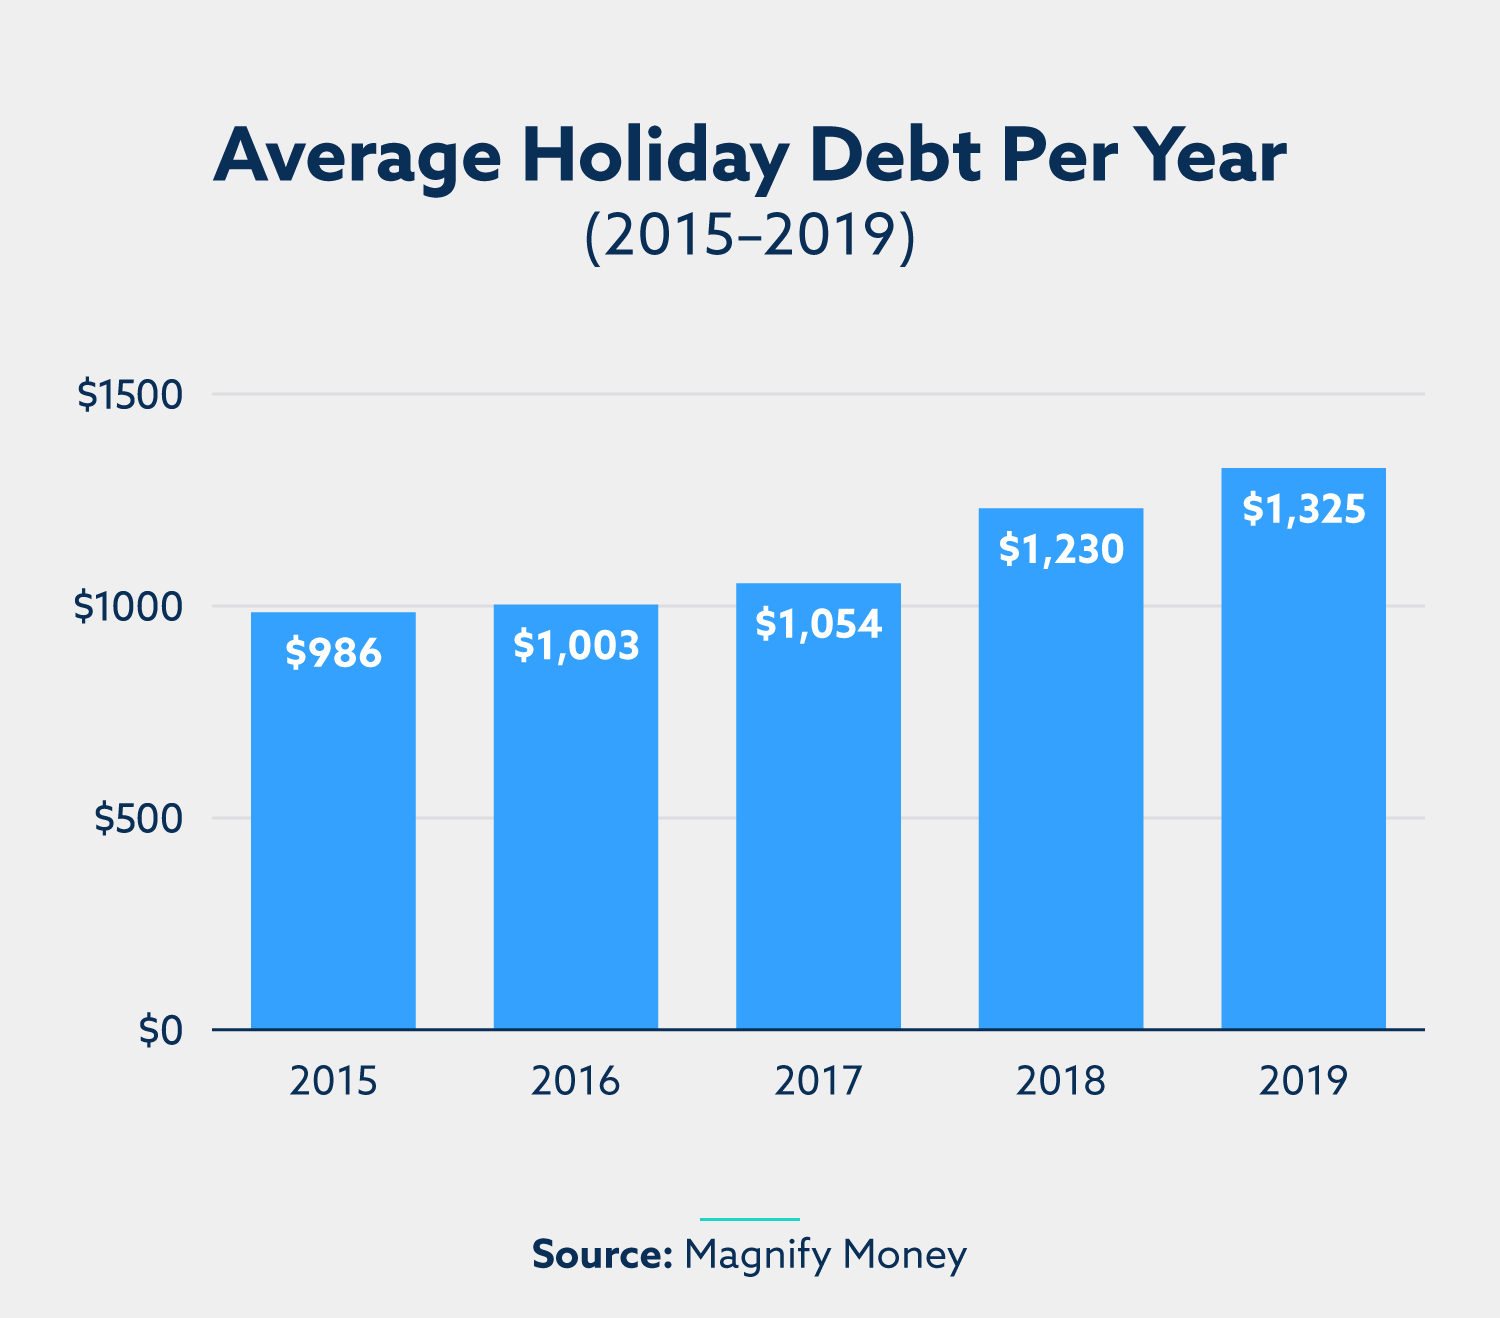 Alt text: Average Holiday Debt Per Year (2015–2019): 2015: $986. 2016: $1,003. 2017: $1,054. 2018: $1,230. 2019: $1,325. Source: Magnify Money